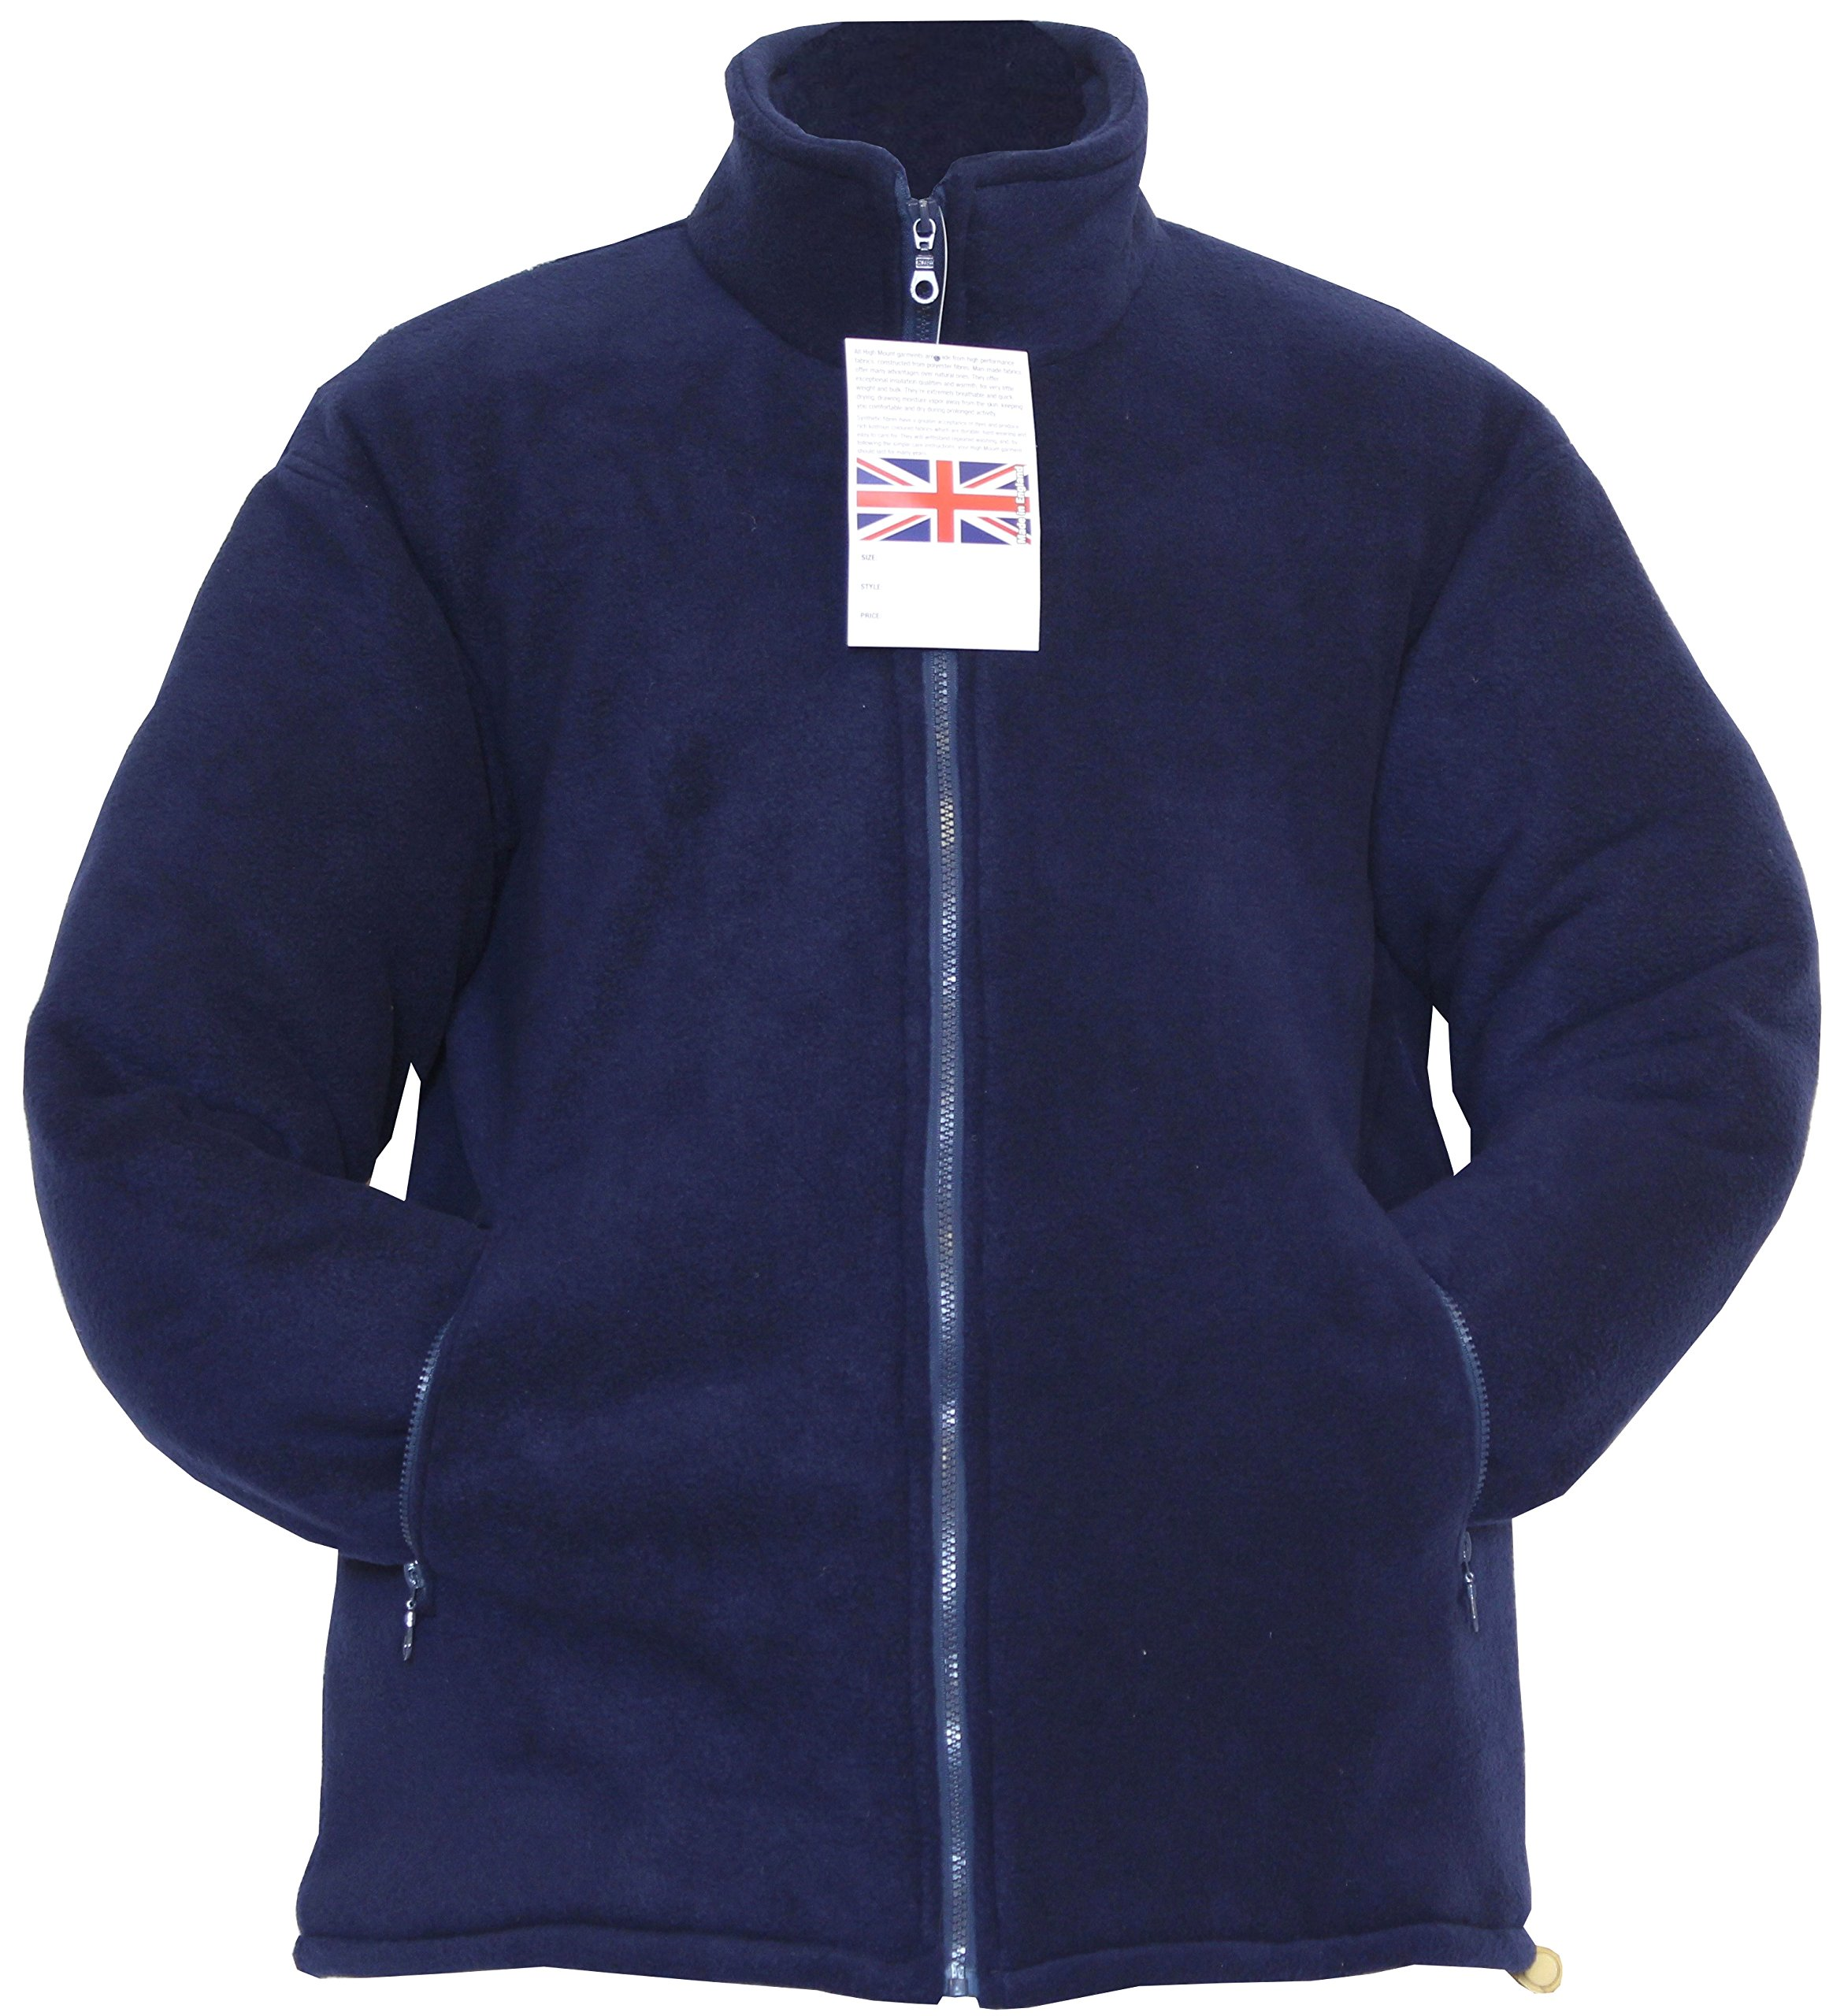 Champion New Mens Thick Warm Padded Anti Pill Fleece Jacket Quilted Coat Full Zip Zipped Pockets Inside Pocket Adjustable Drawcord at Hem Premium Quality Walking Outdoors Countrywear Glen Navy